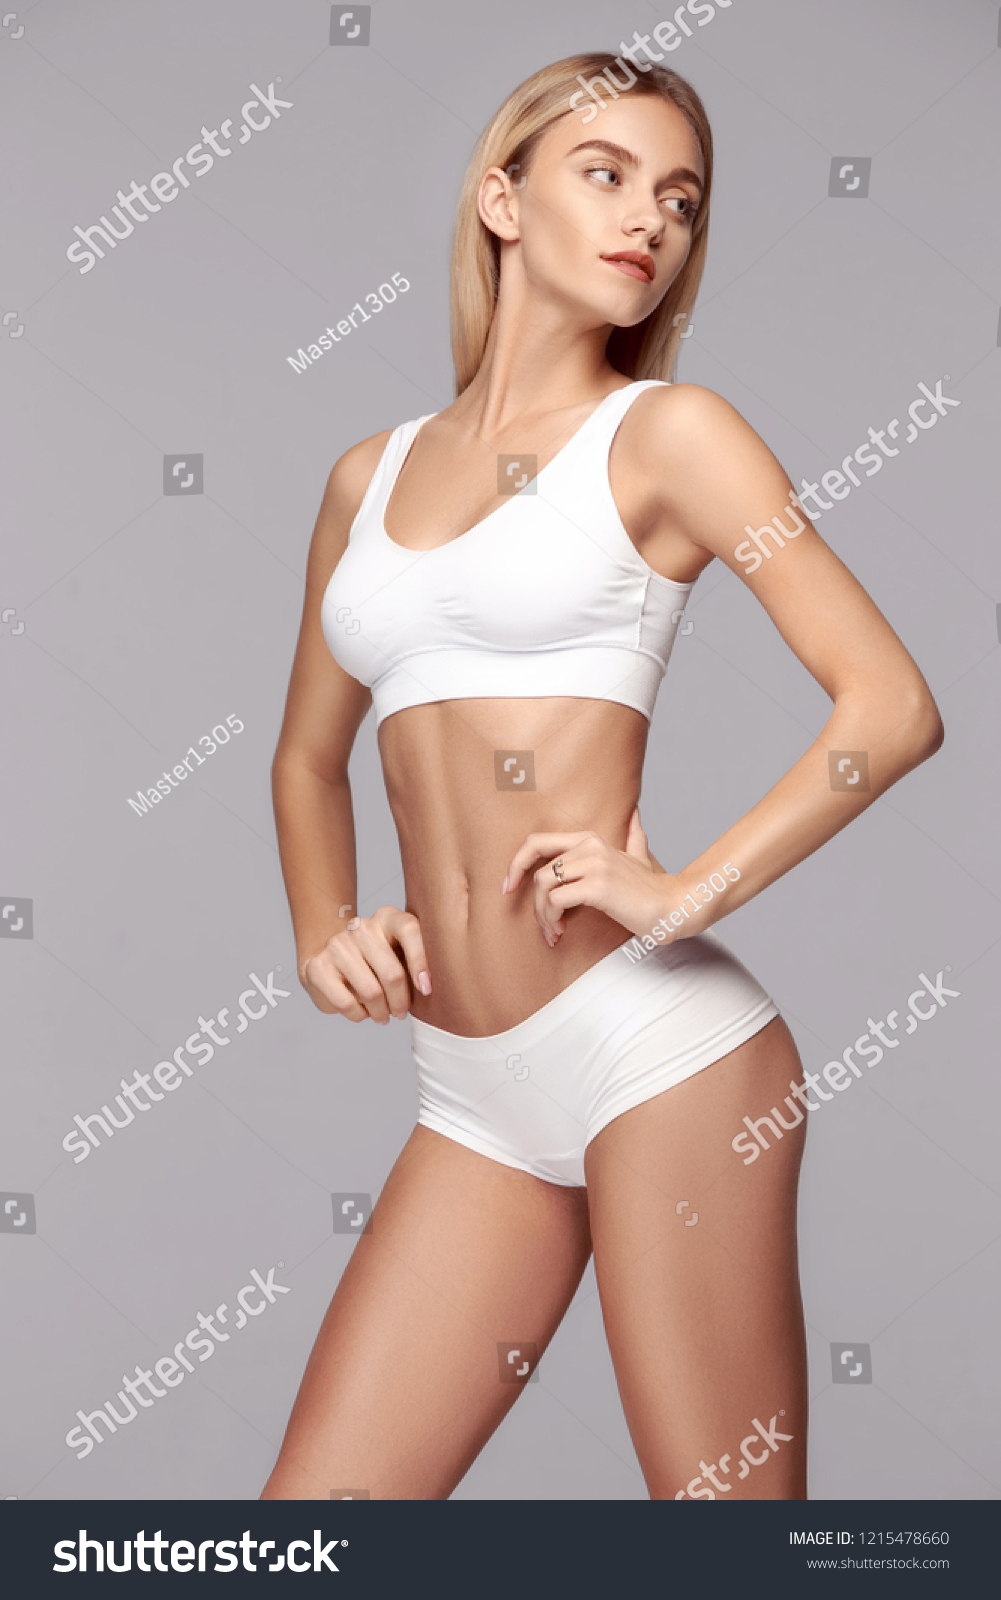 Perfect slim toned young body of the girl or fit woman at studio. The fitness, diet, sports, plastic surgery and aesthetic cosmetology concept. #1215478660